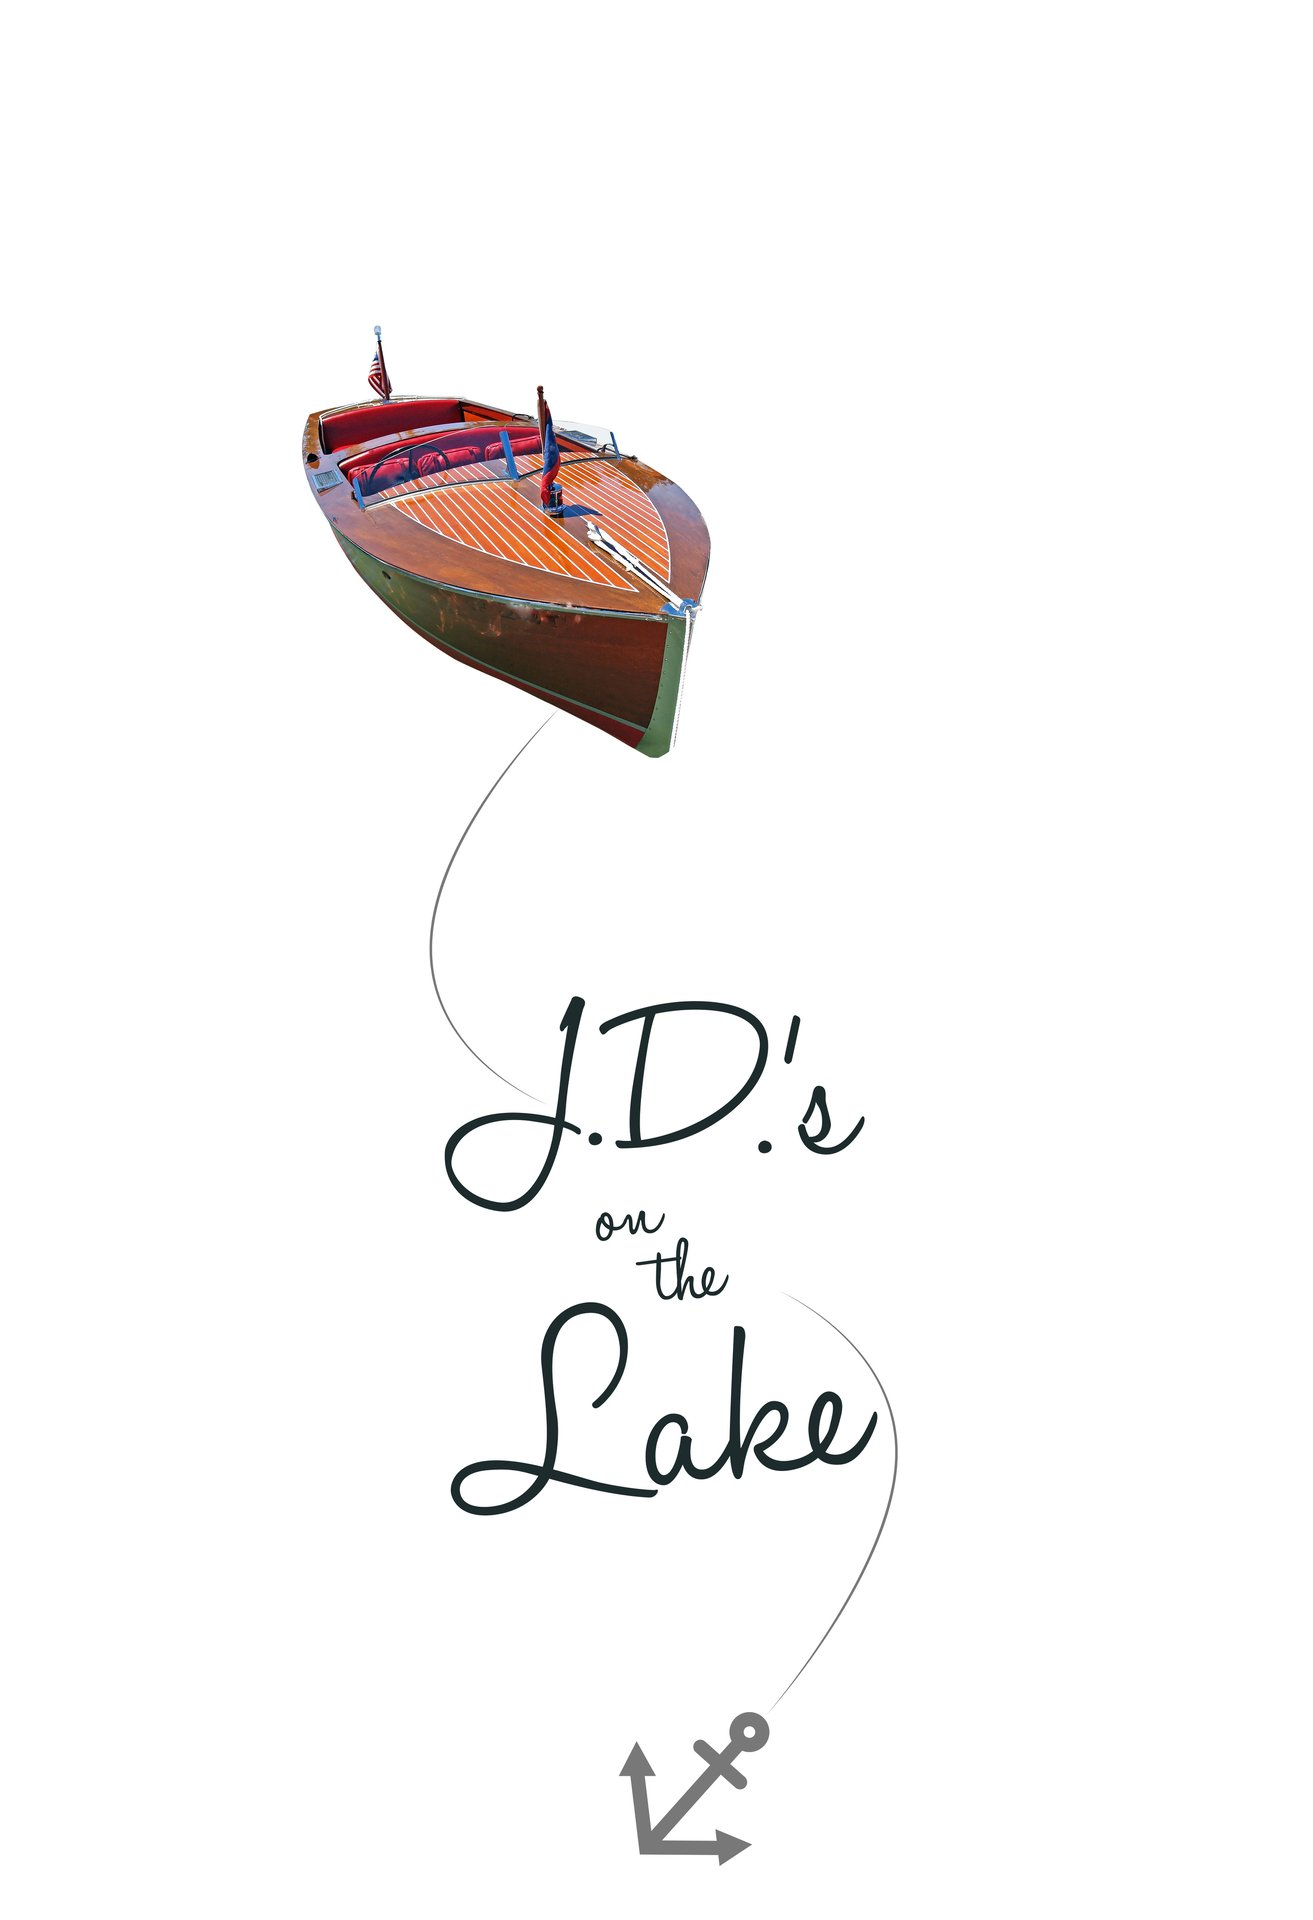 j d s on the lake jd s bar b que barbecue restaurant in ga j d s on the lake jd s bar b que